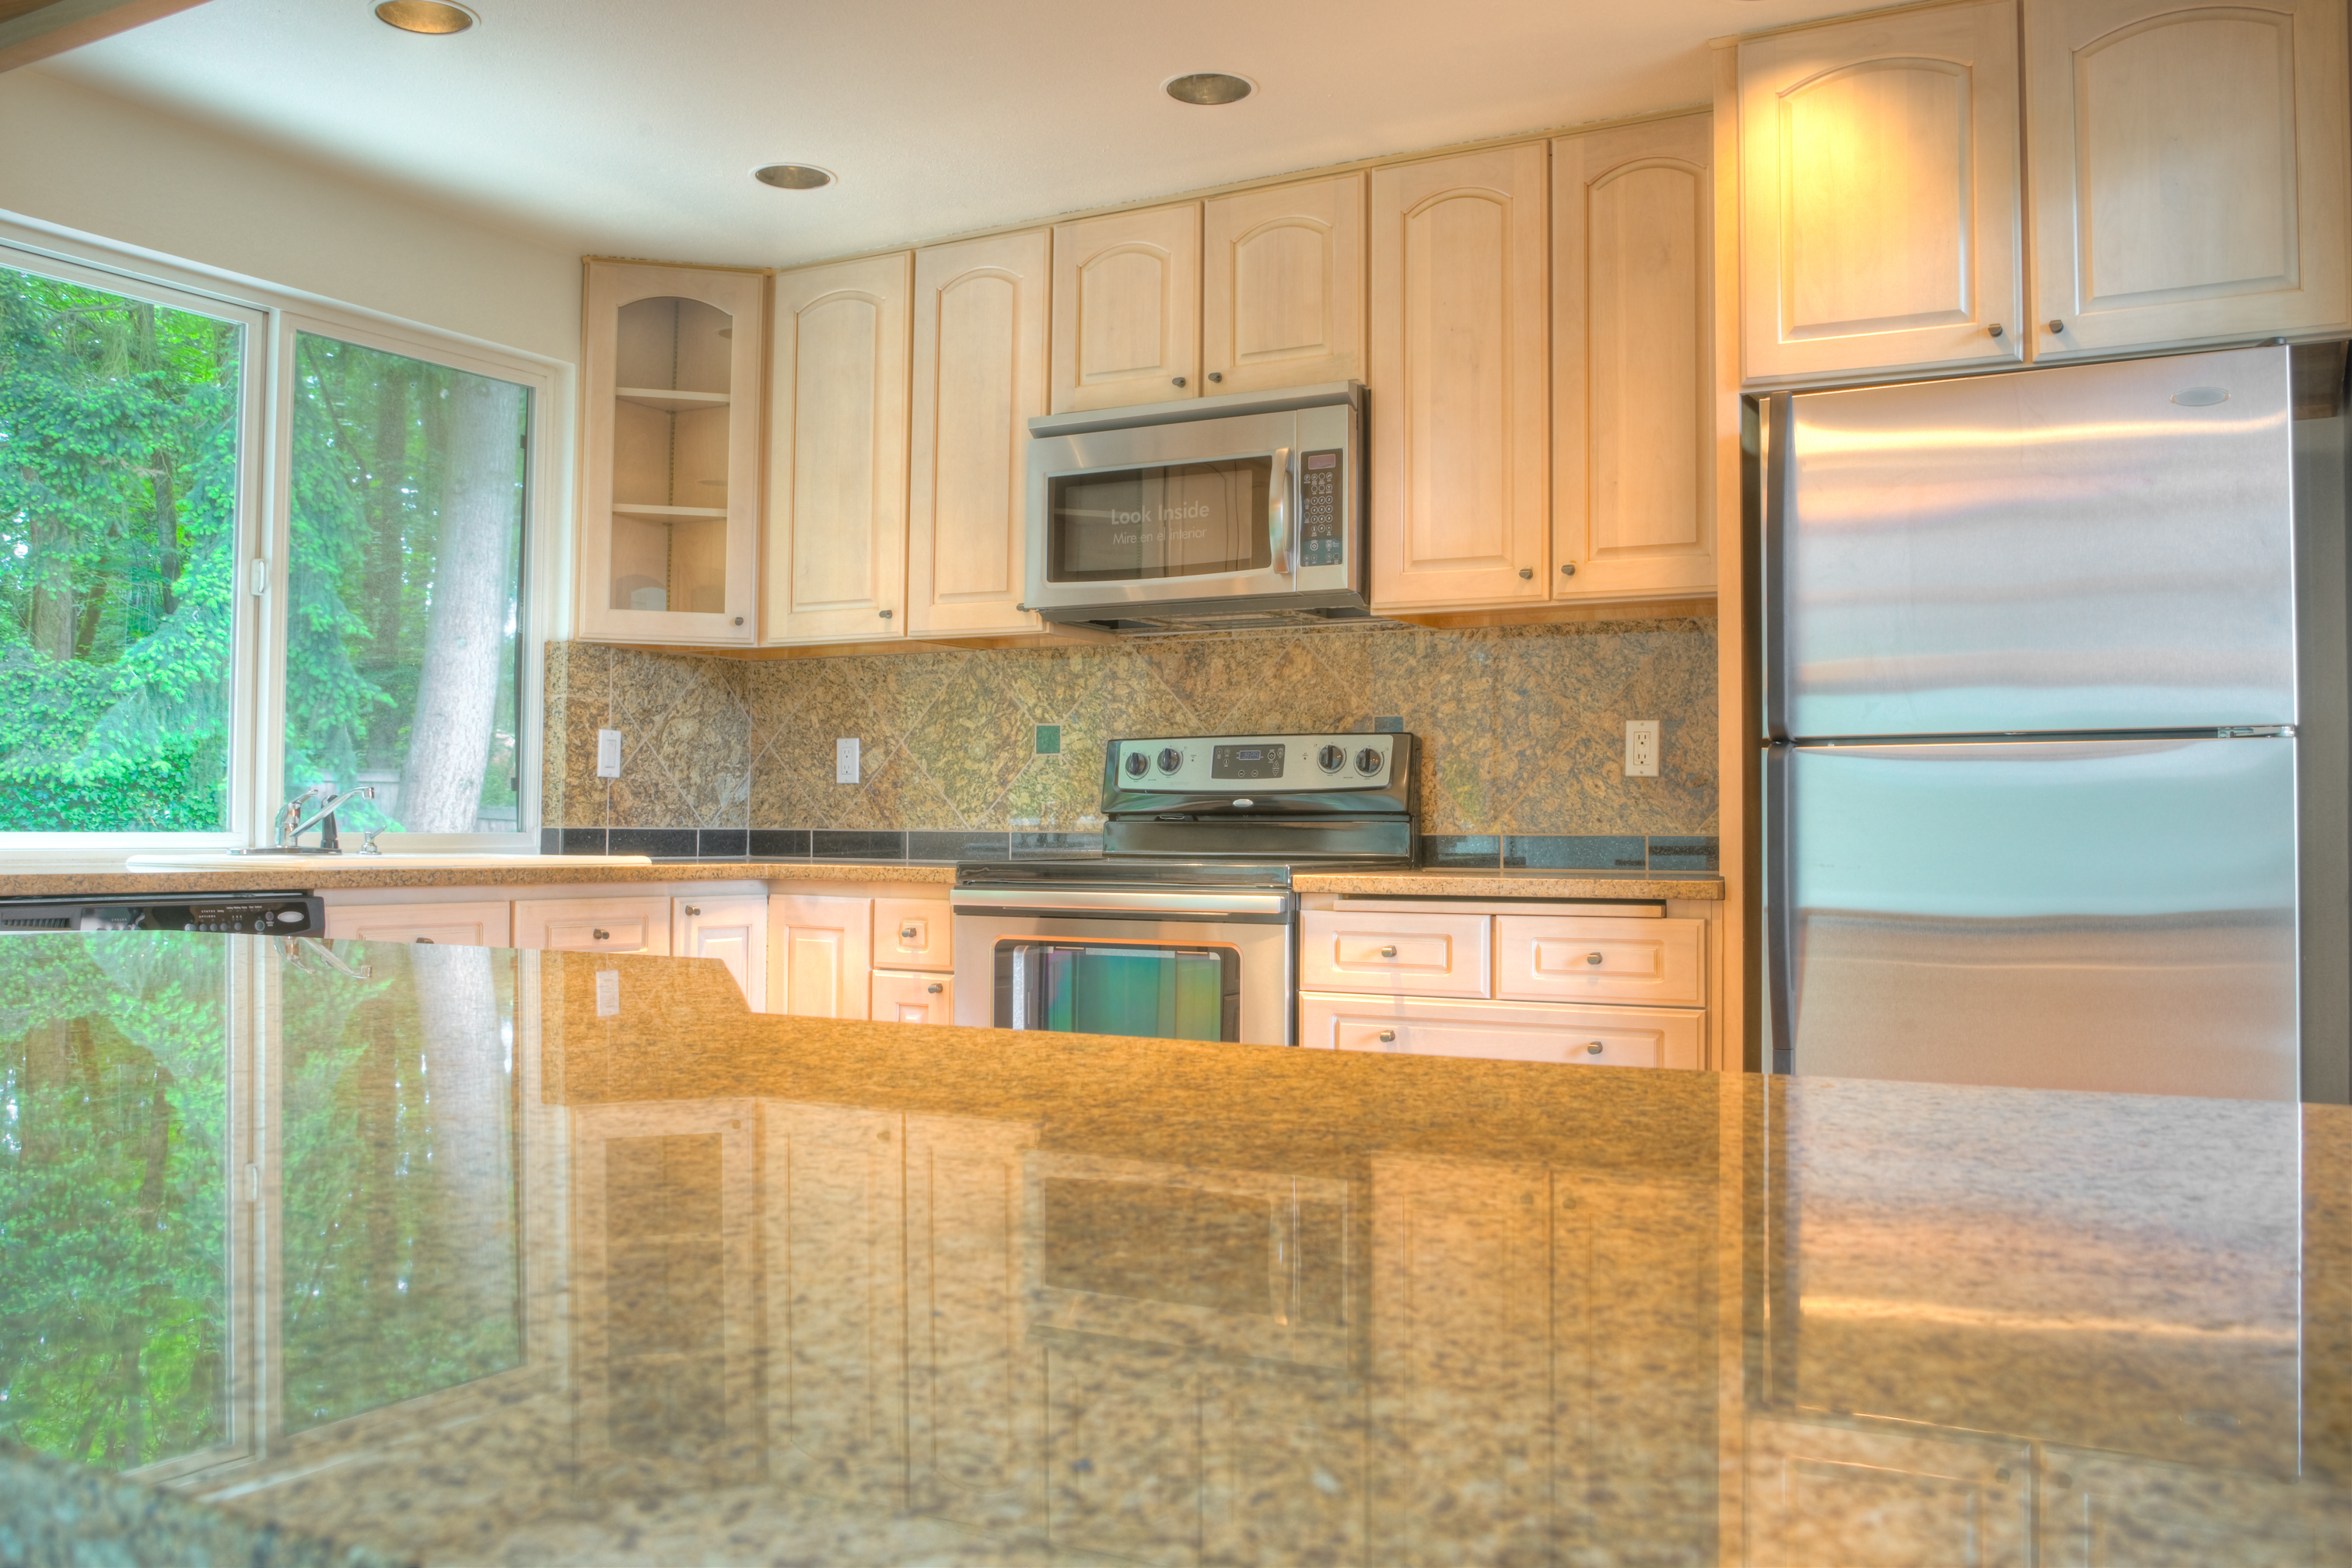 how countertops for to seal choice a are good granite kitchens countertop guides sandstone